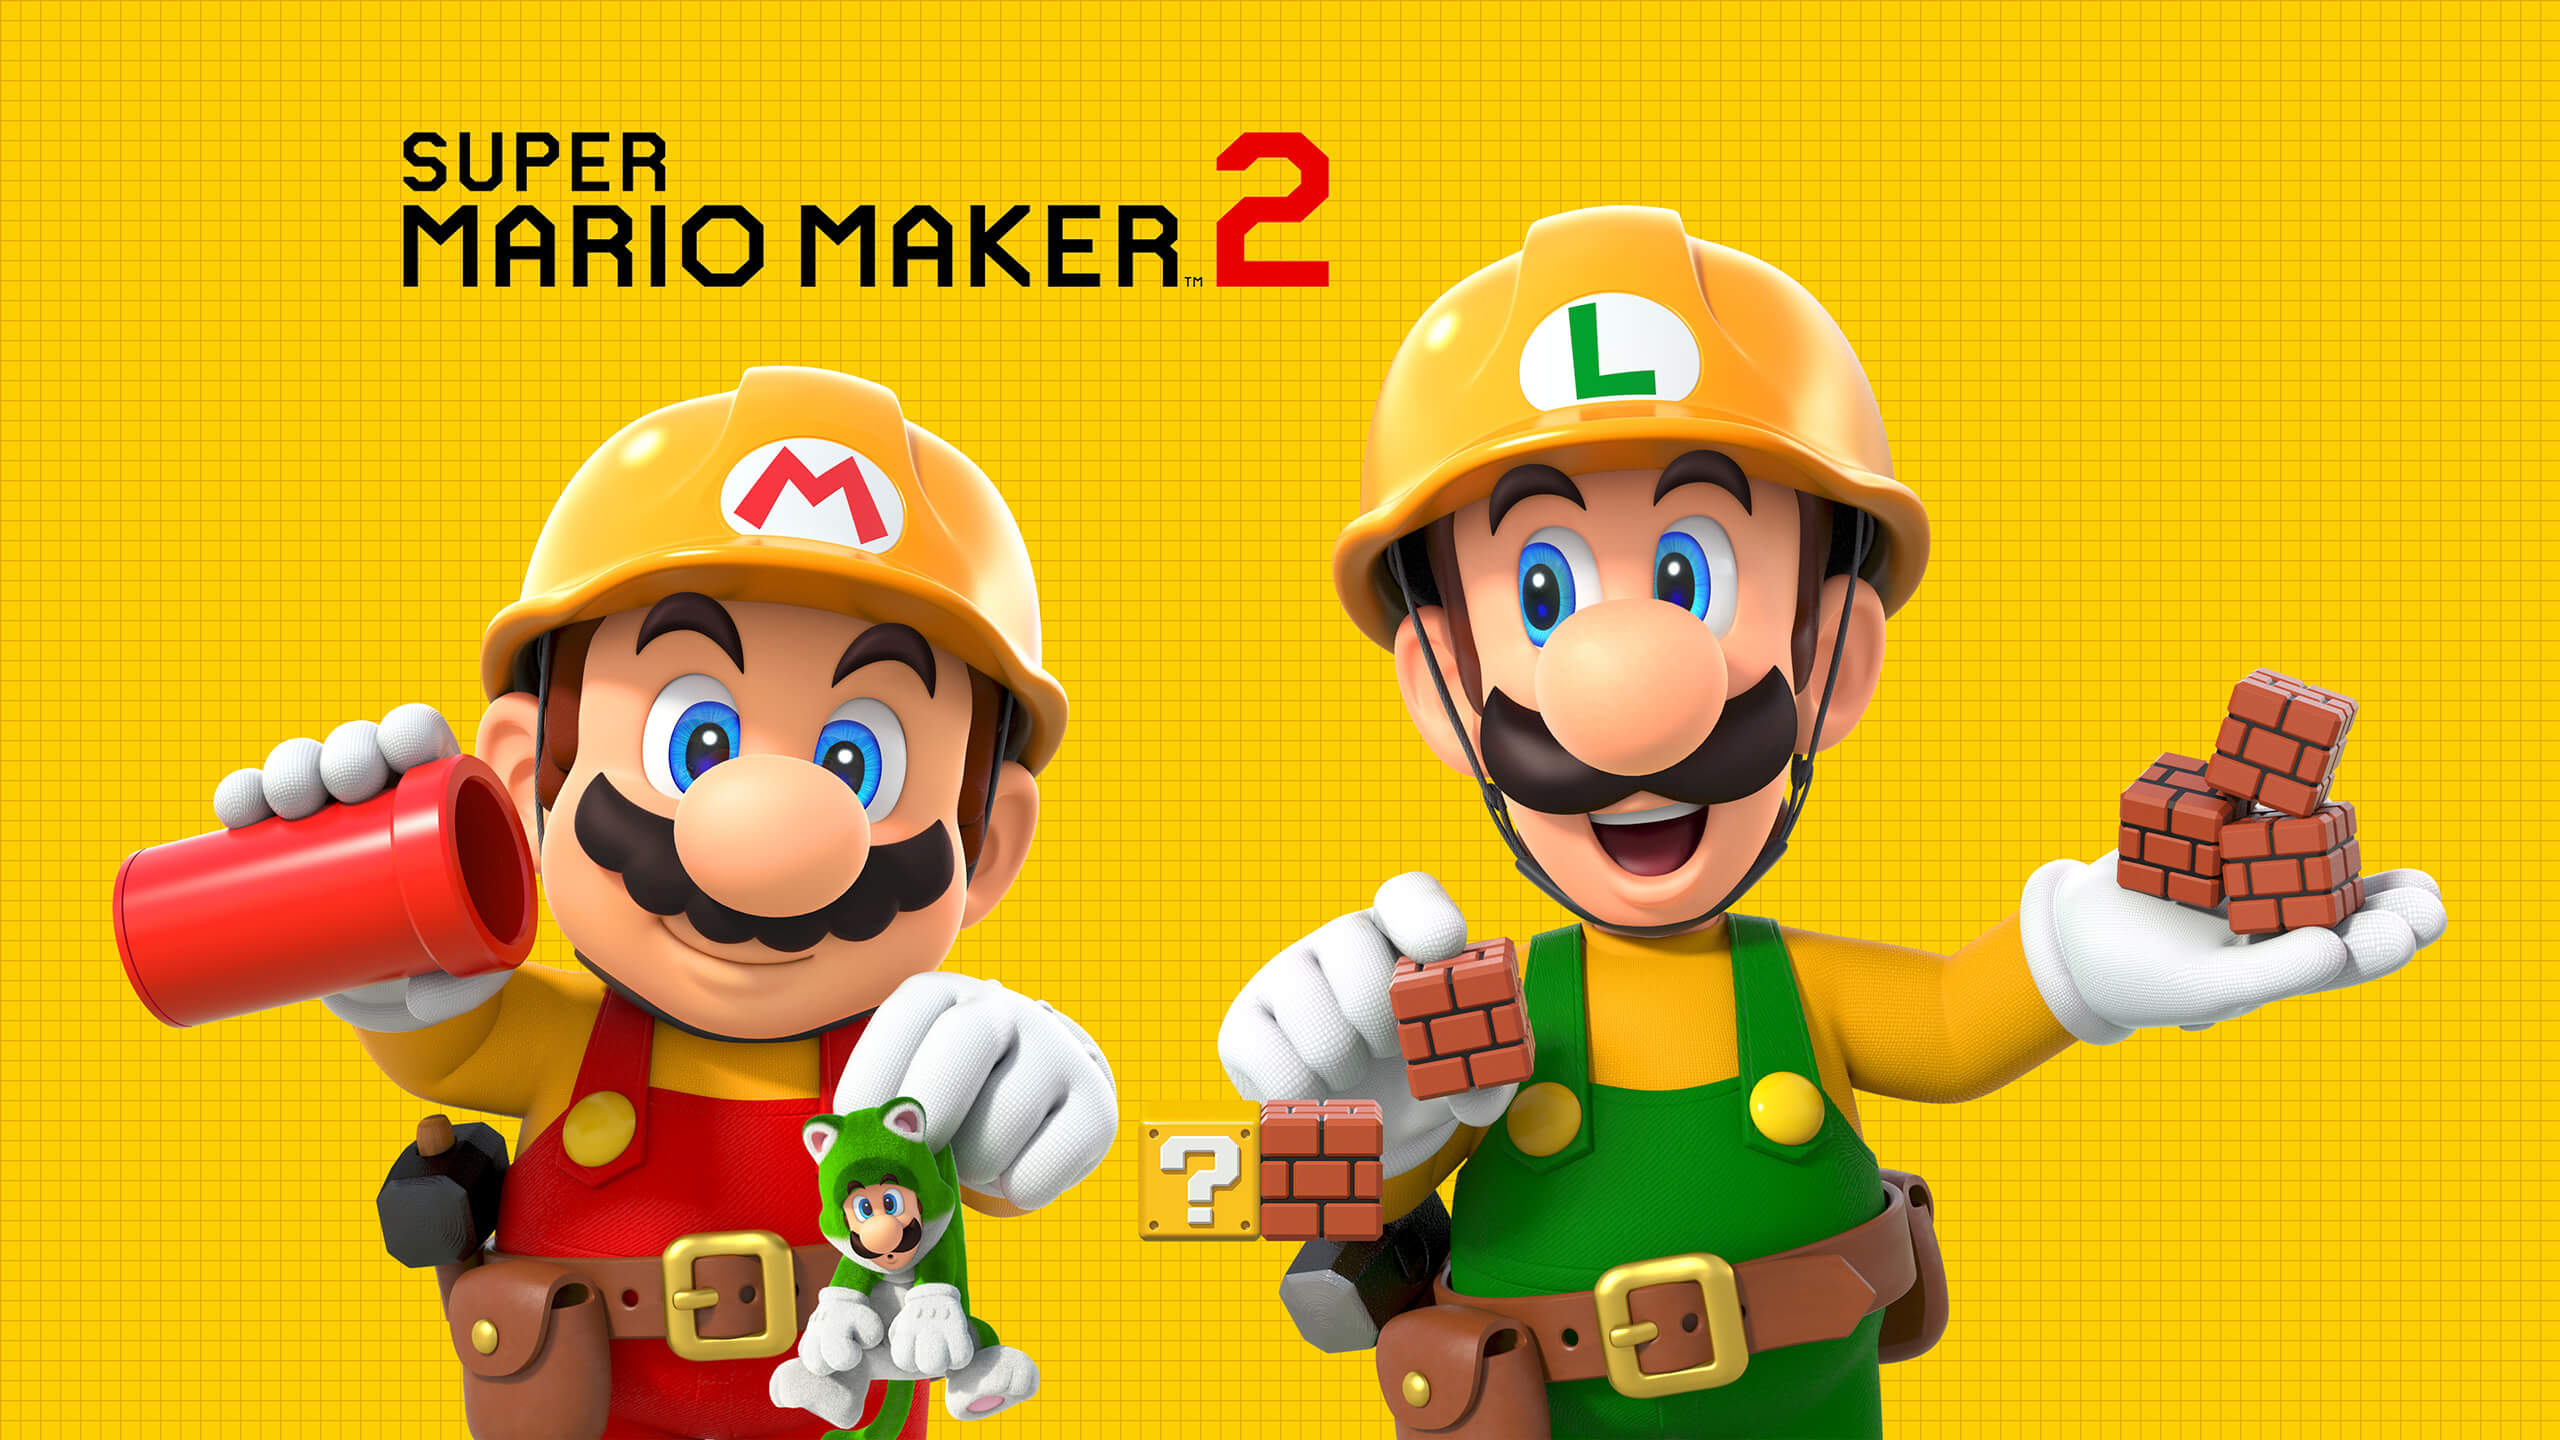 super mario maker 2 background wallpaper 68160